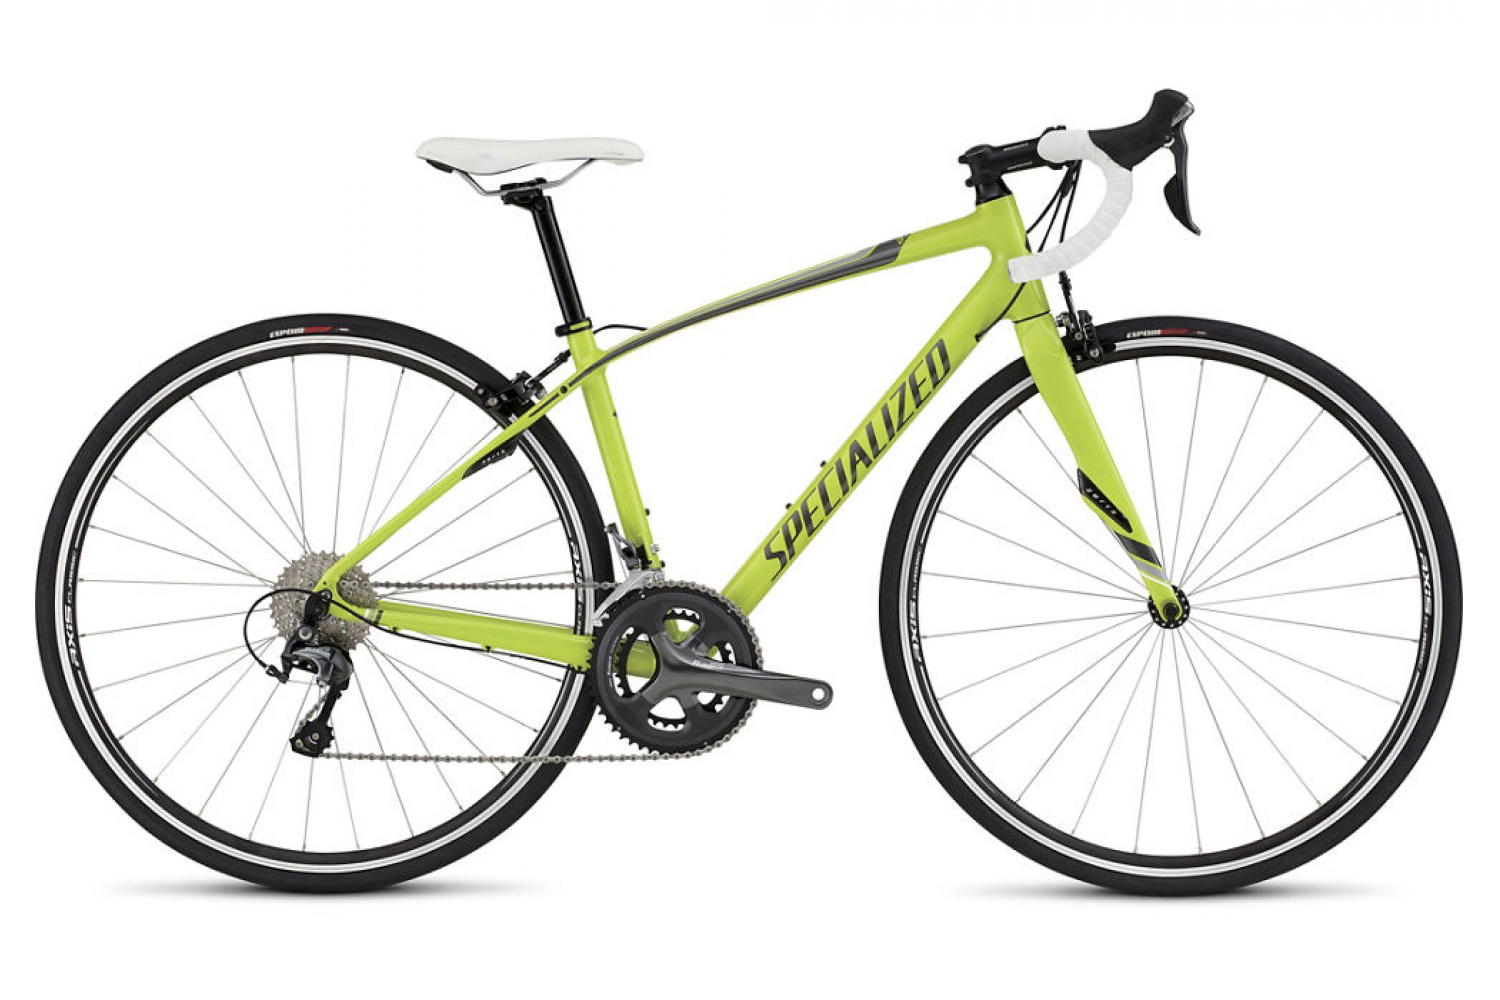 Шоссейные Specialized Dolce Elite 2016 Артикул 90816-4044, 90816-4048, 90816-4051, 90816-4054, 90816-4057